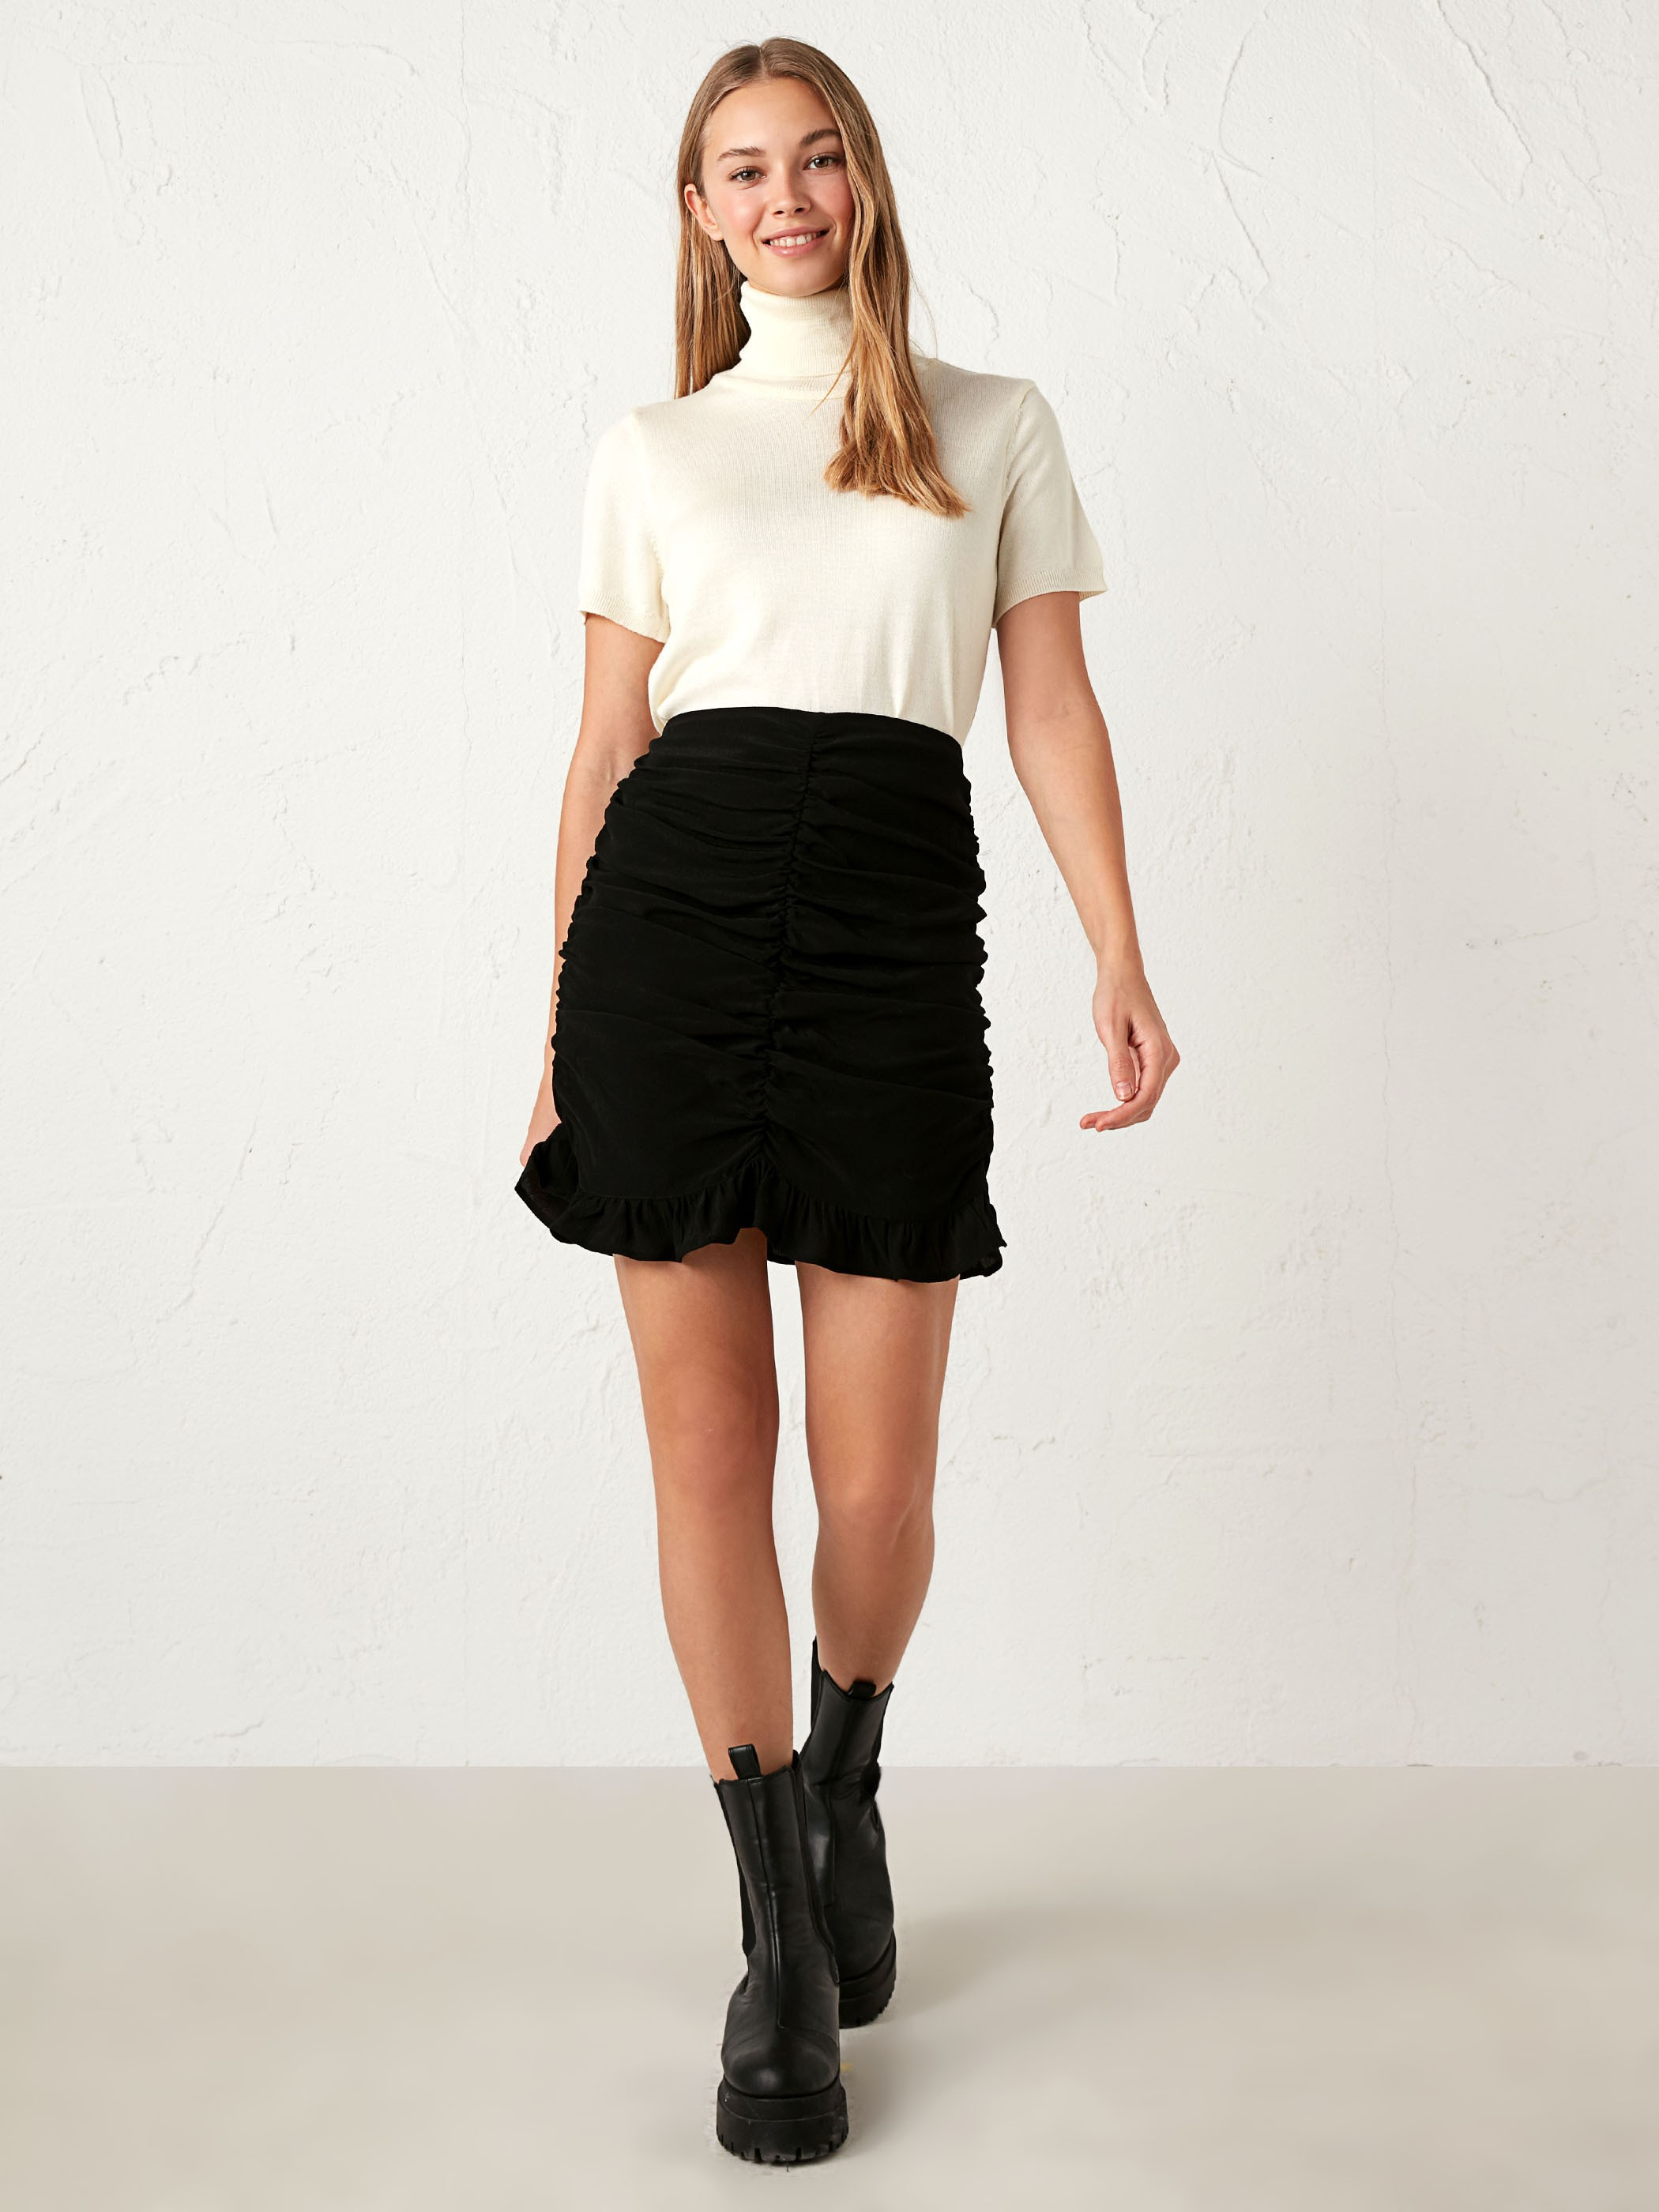 BLACK - Satin Midi Skirt - 0WHI03Z8